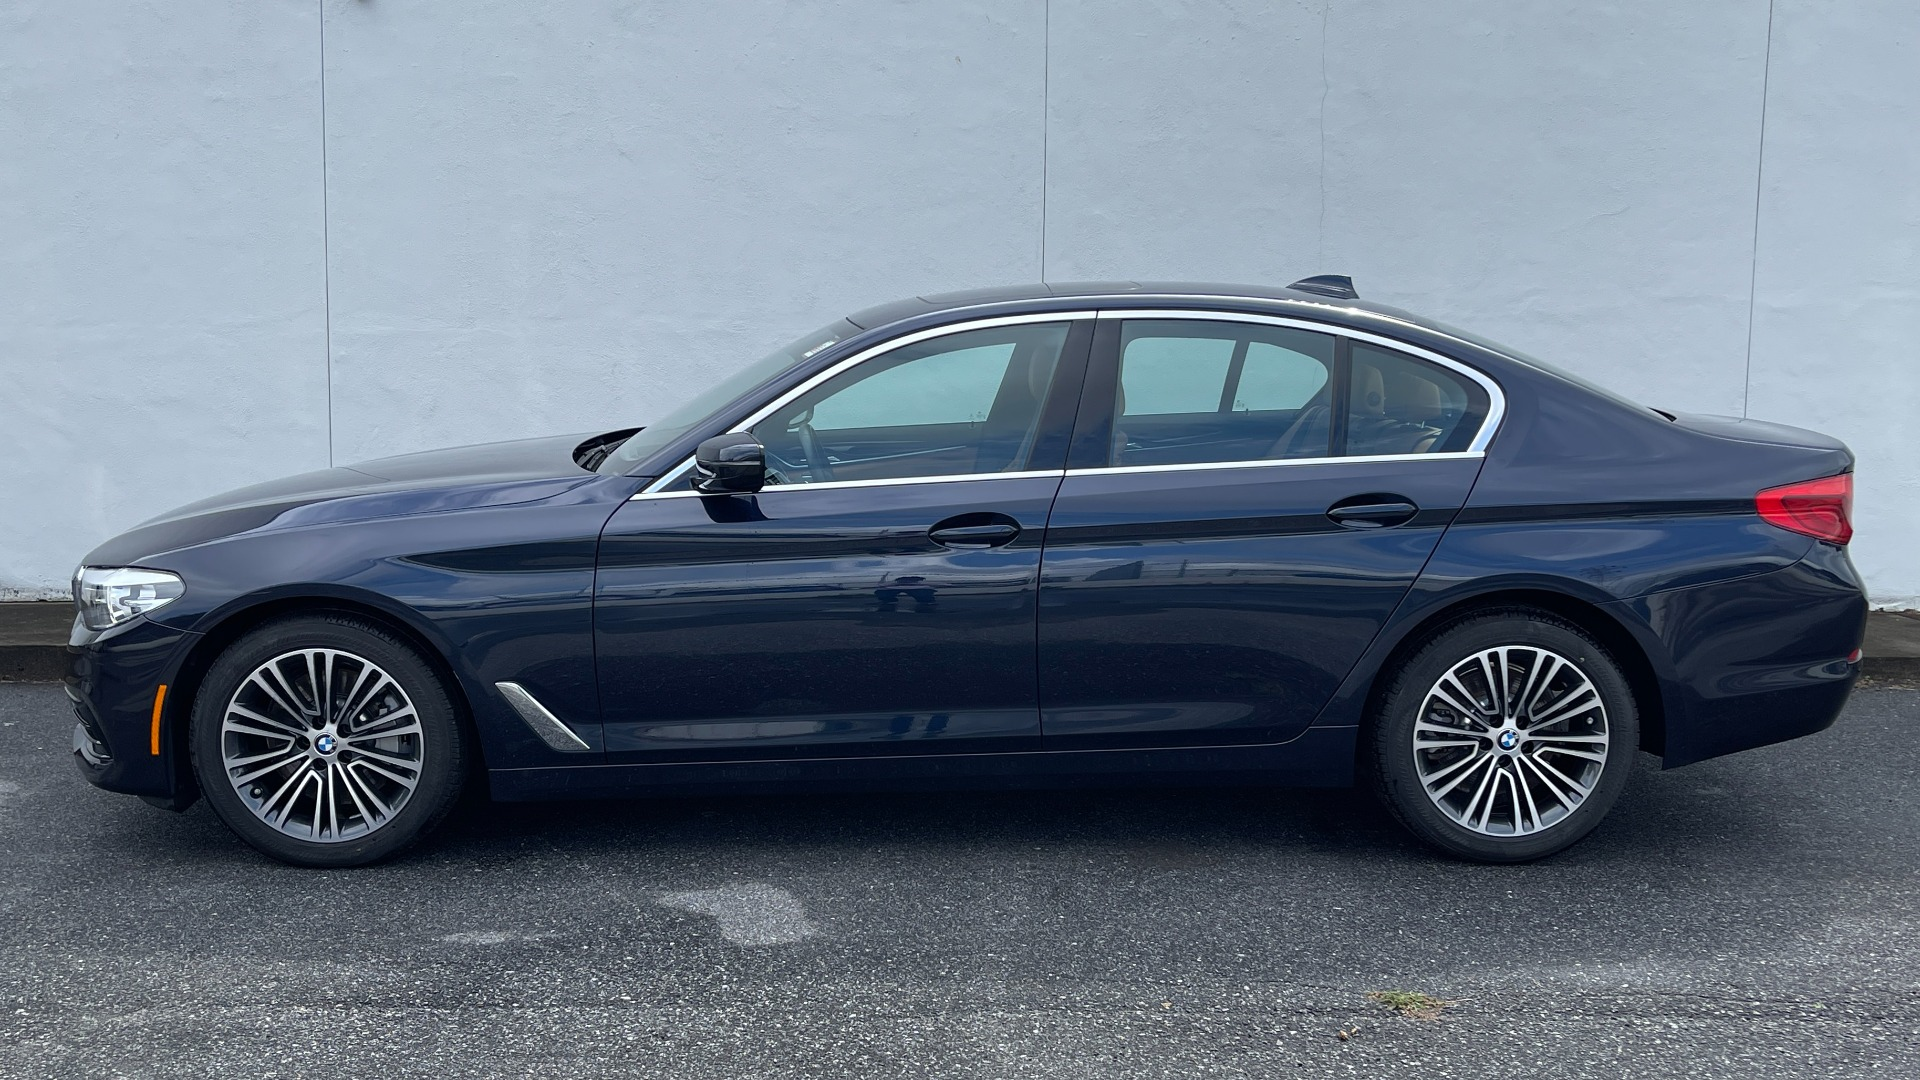 Used 2019 BMW 5 SERIES 530I XDRIVE / CONV PKG / PDC / NAV / SUNROOF / HTD STS / REARIEW for sale $39,595 at Formula Imports in Charlotte NC 28227 5